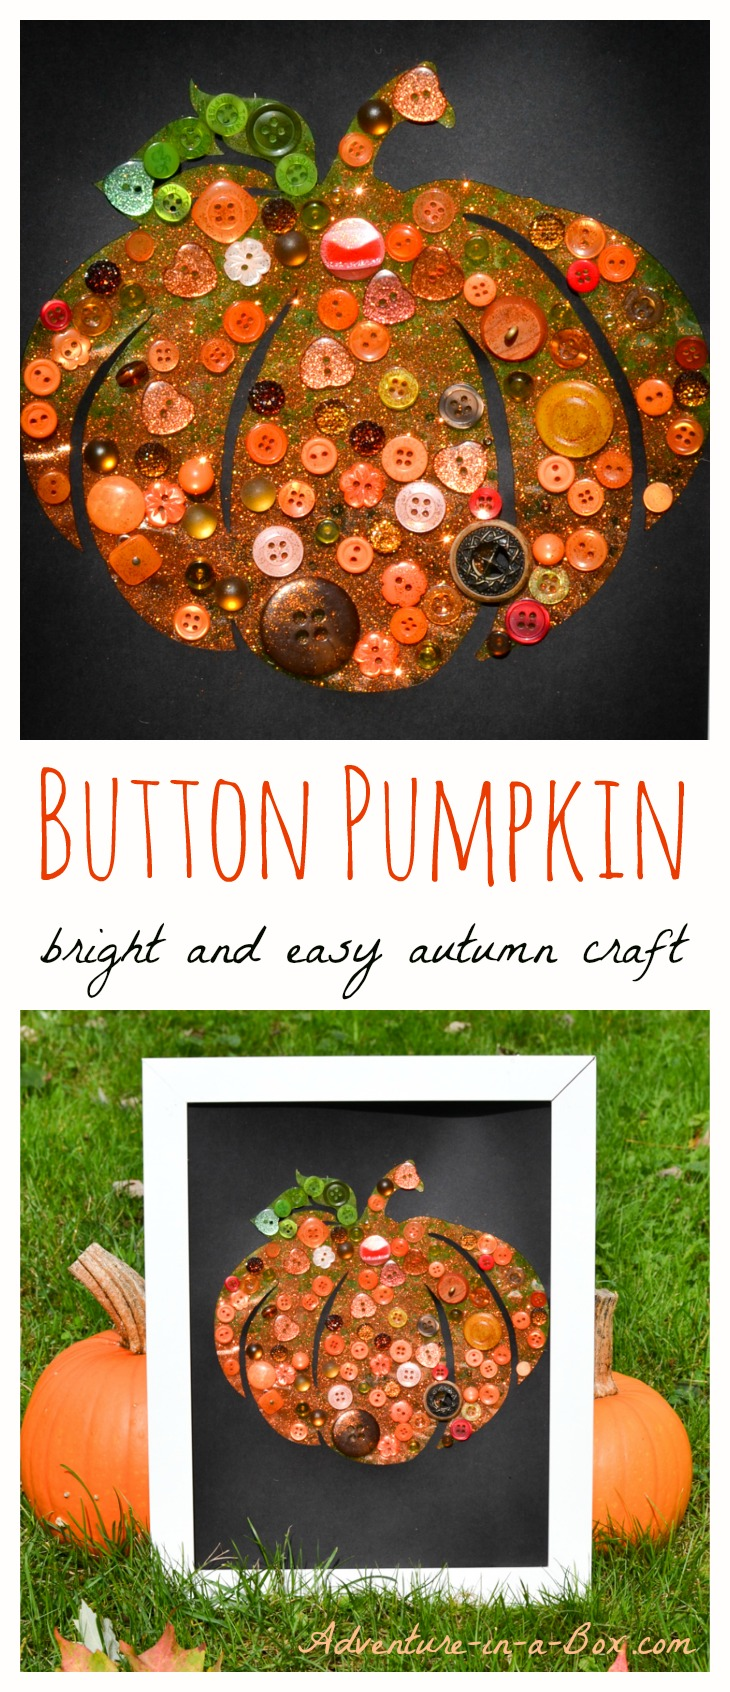 Fall crafts for adults to make - Button Pumpkin Autumn Craft For Children